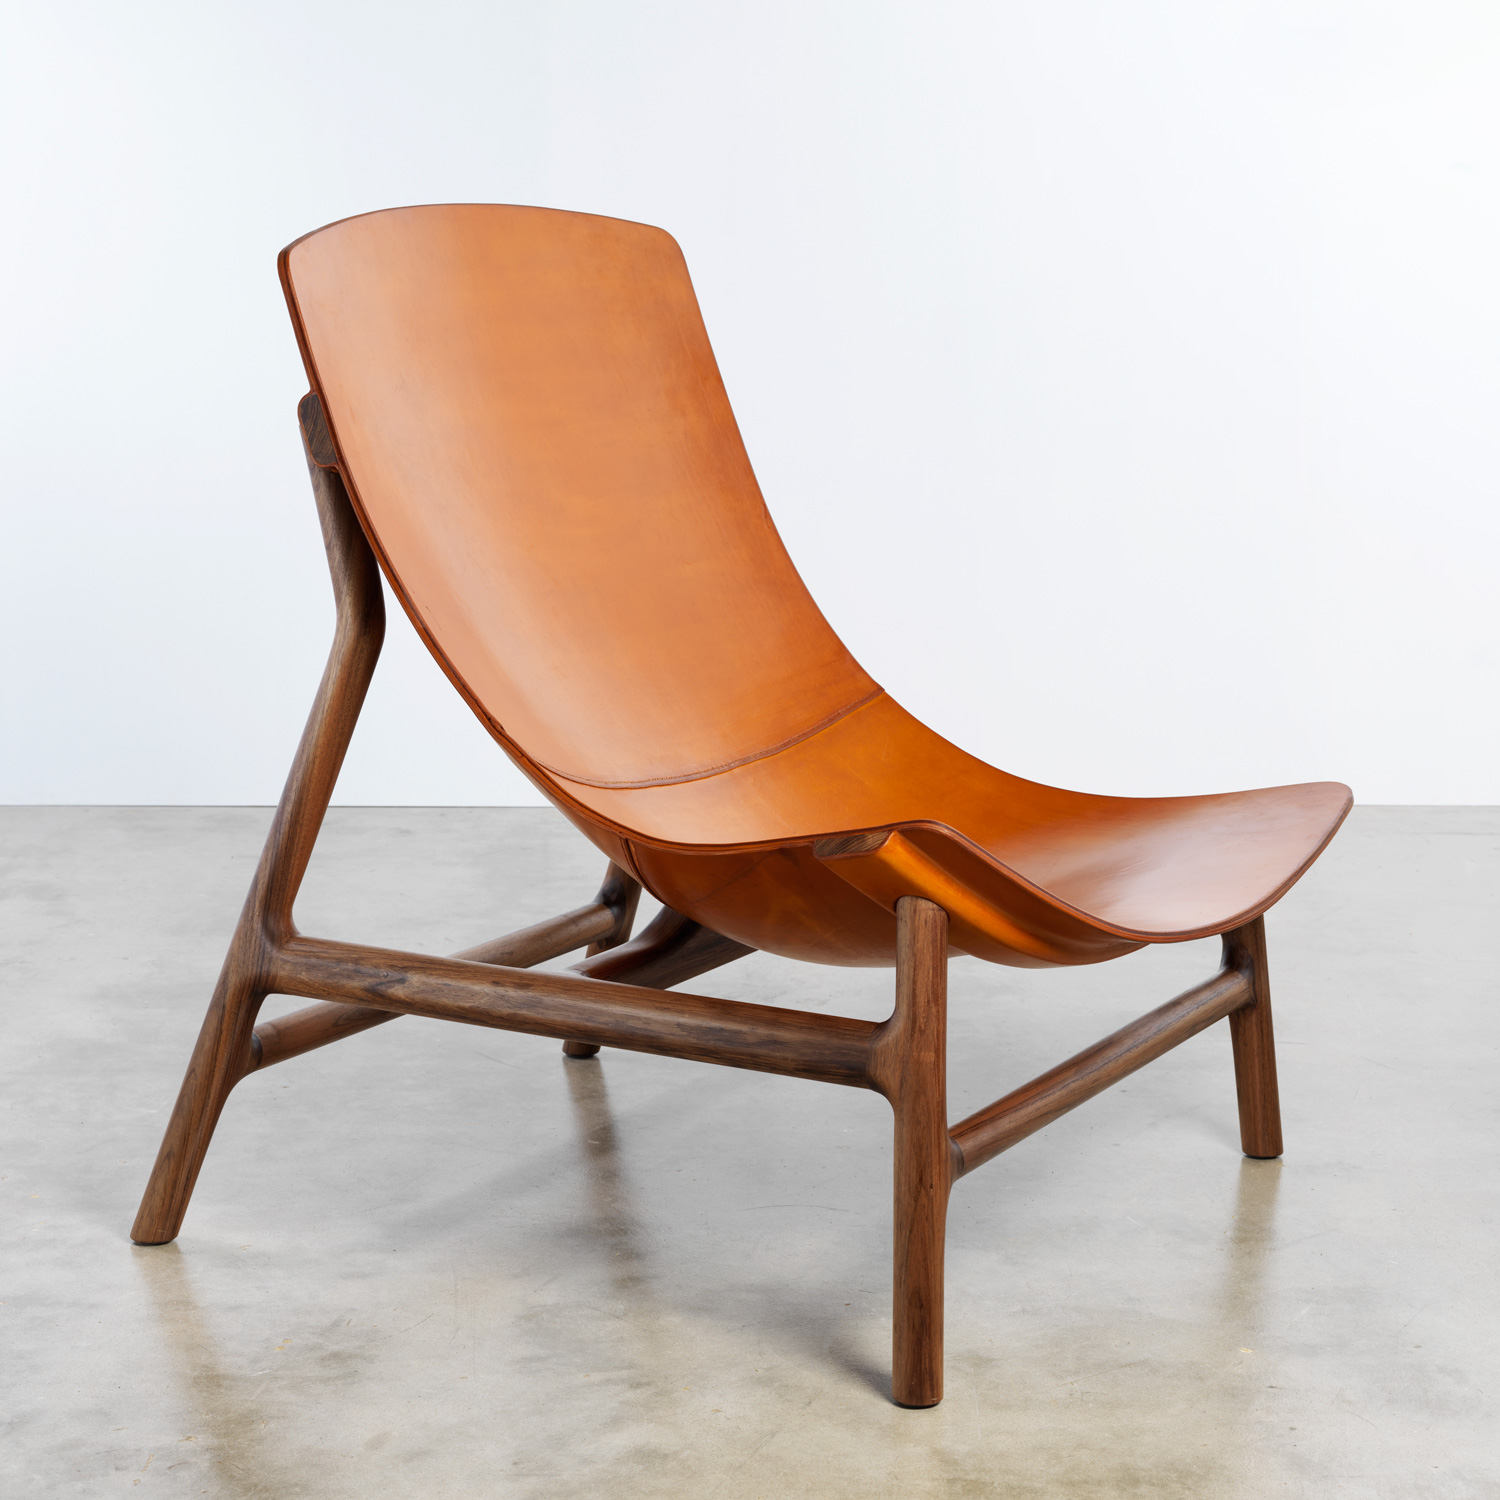 Local Design Settlers Chair by Jon Goulder, Australian Designers Milan | Yellowtrace